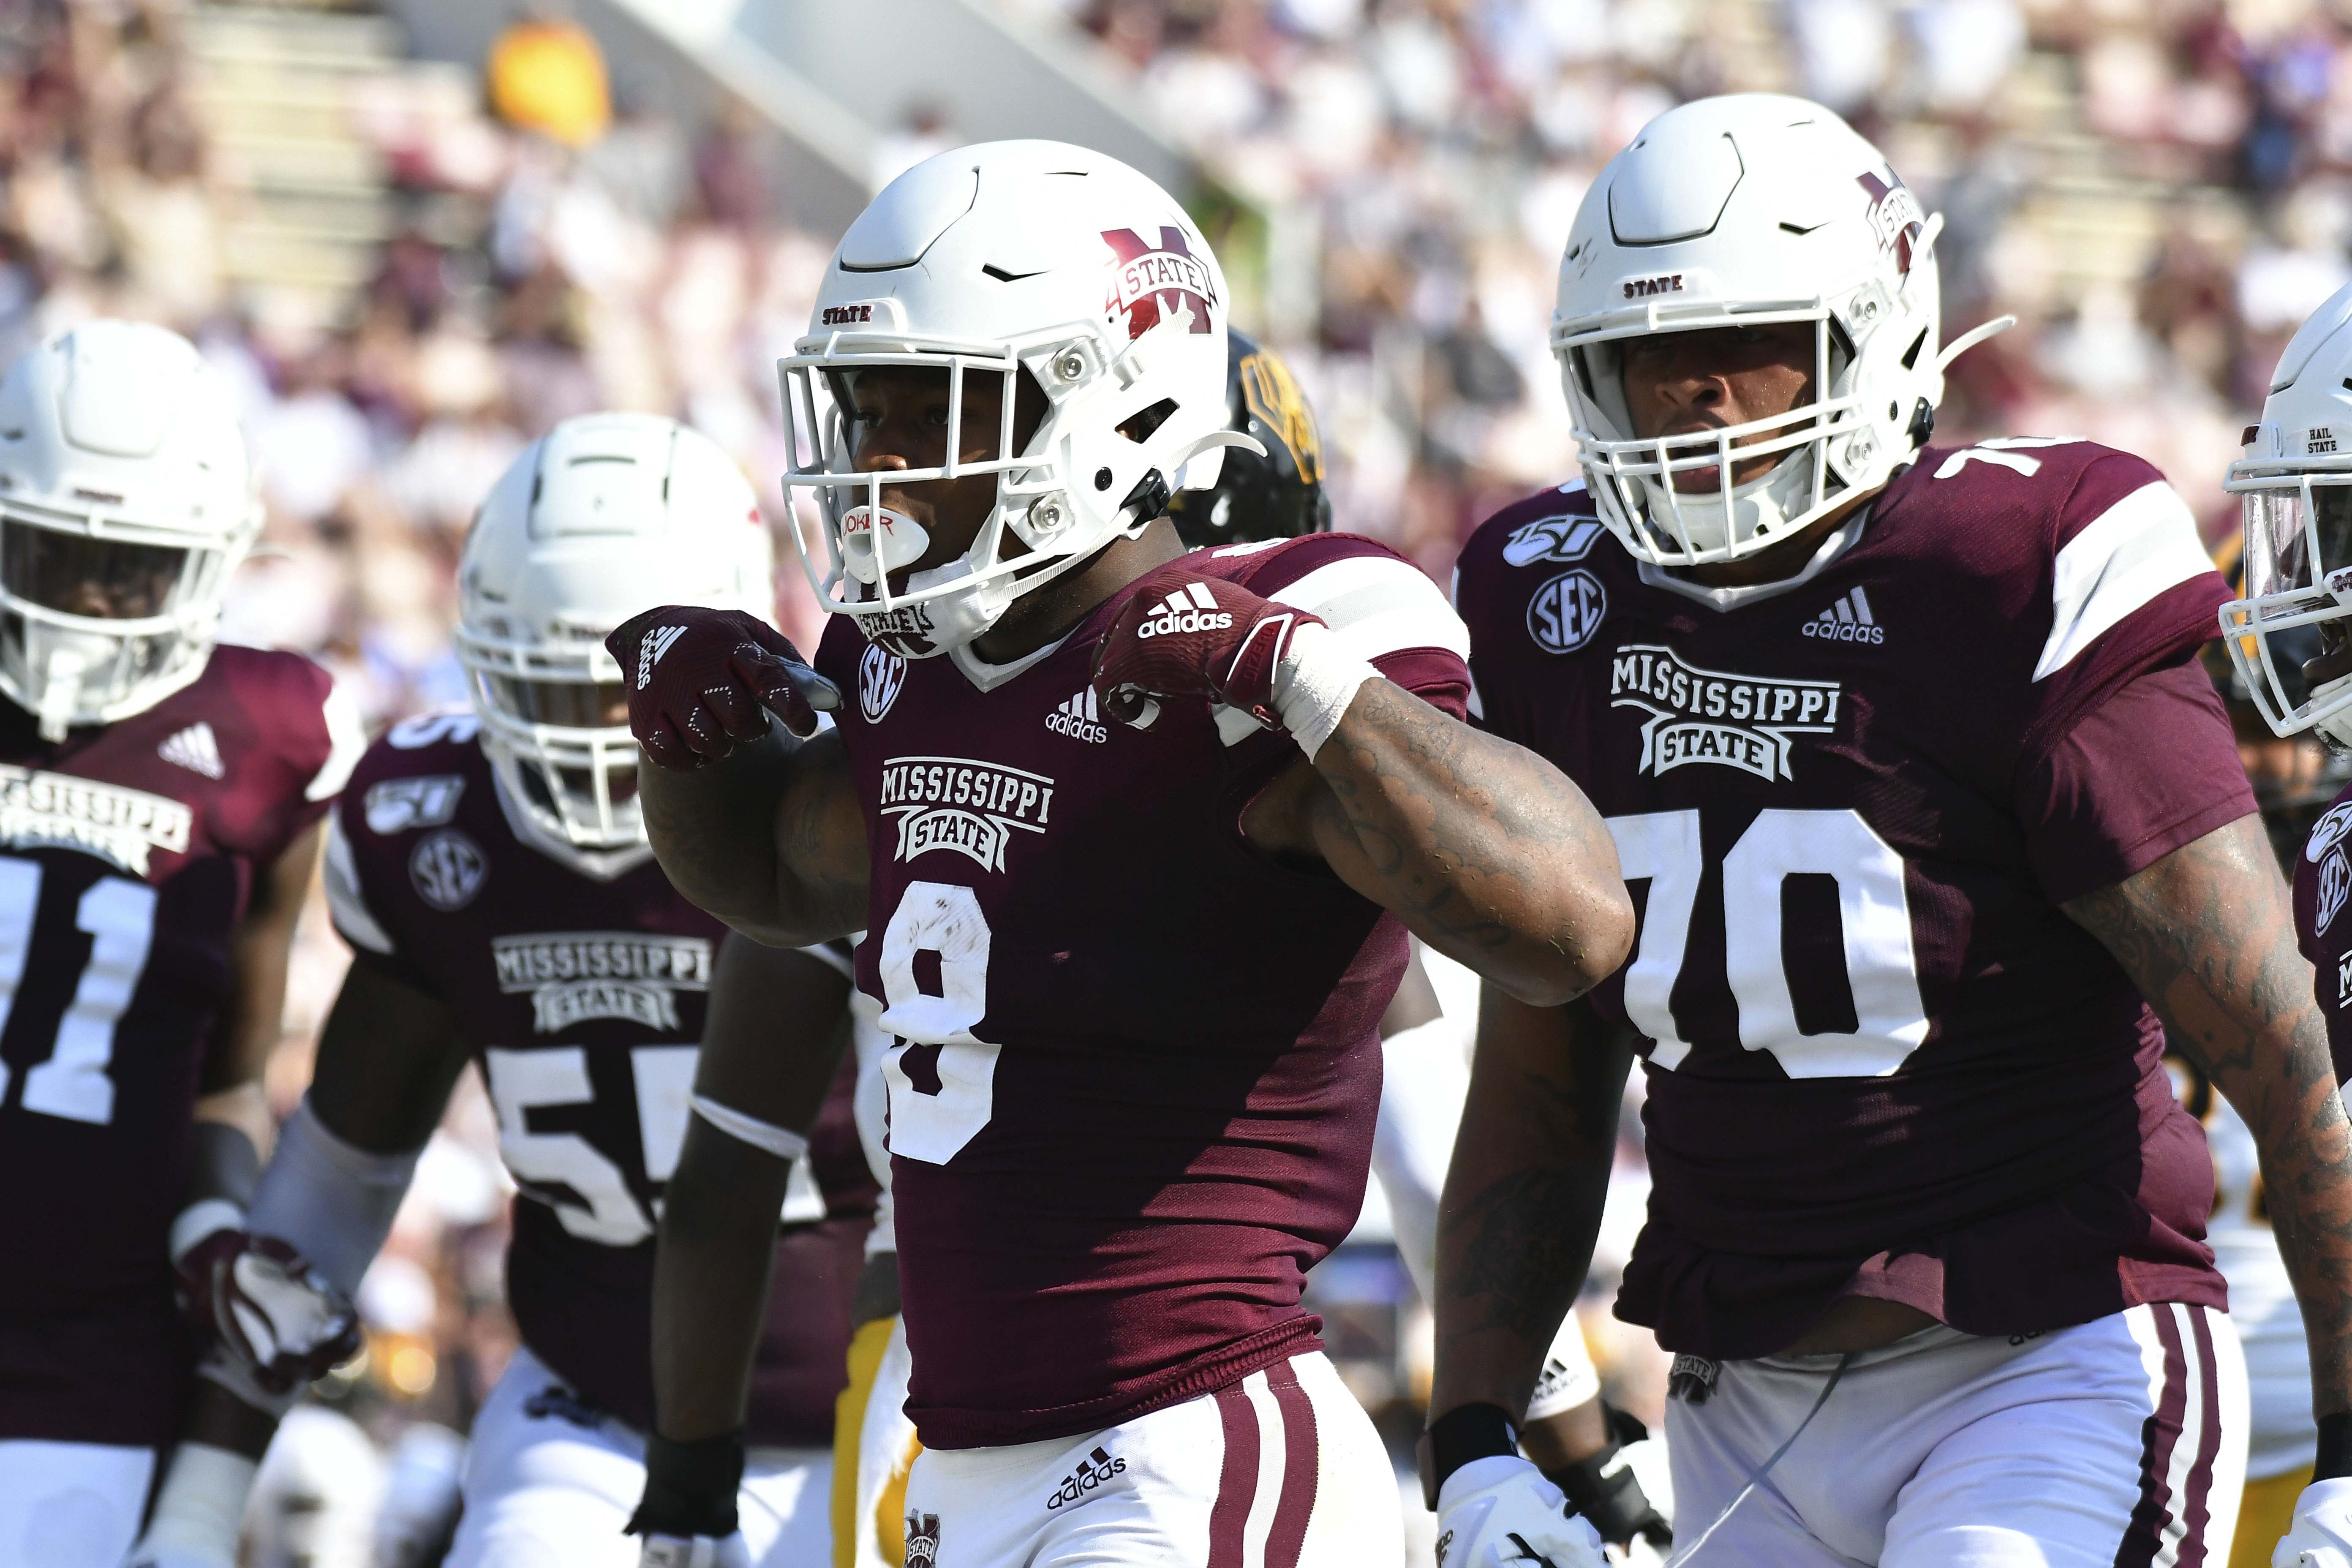 NCAA Football: Southern Mississippi at Mississippi State